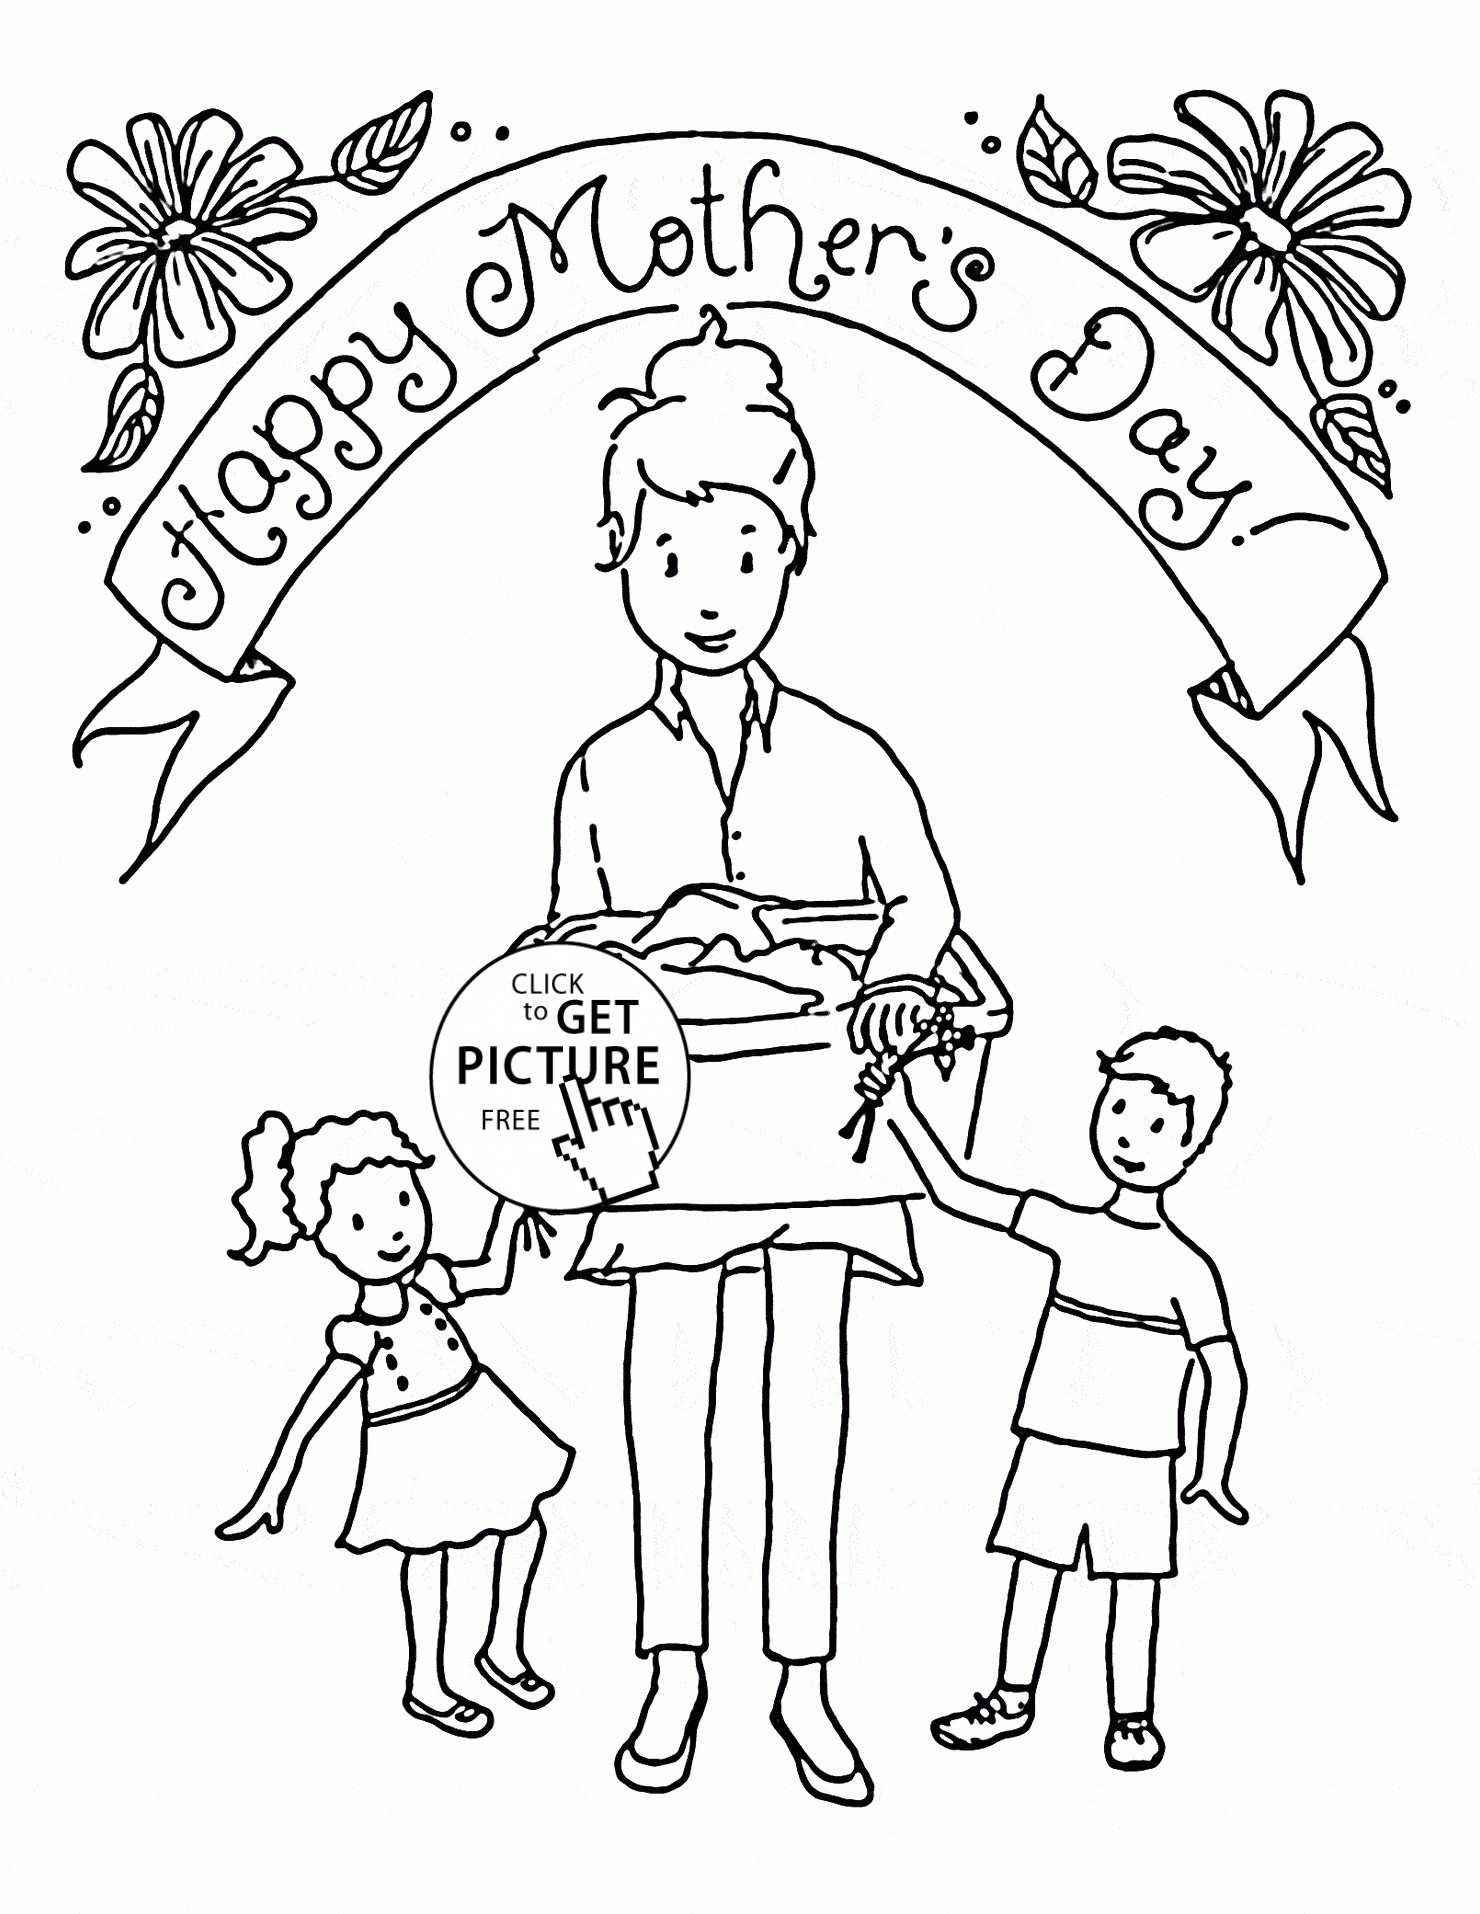 Spanish Valentine's Day Cards Mothers Day Coloring Page Awesome - Free Spanish Mothers Day Cards Printable